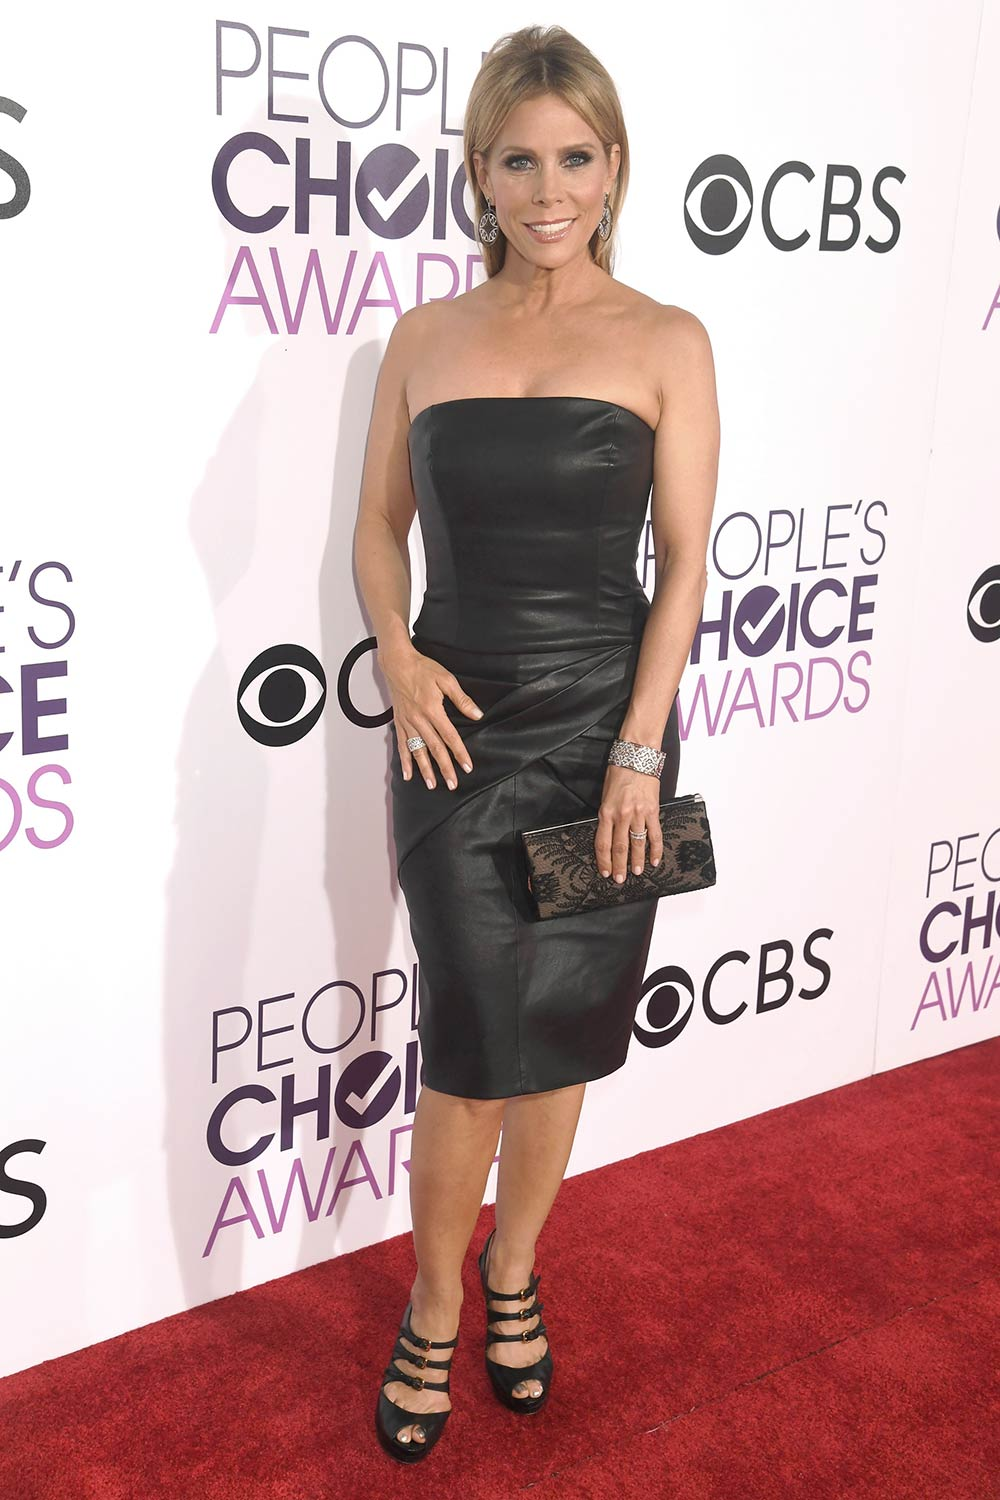 Cheryl Hines attends the People's Choice Awards 2017